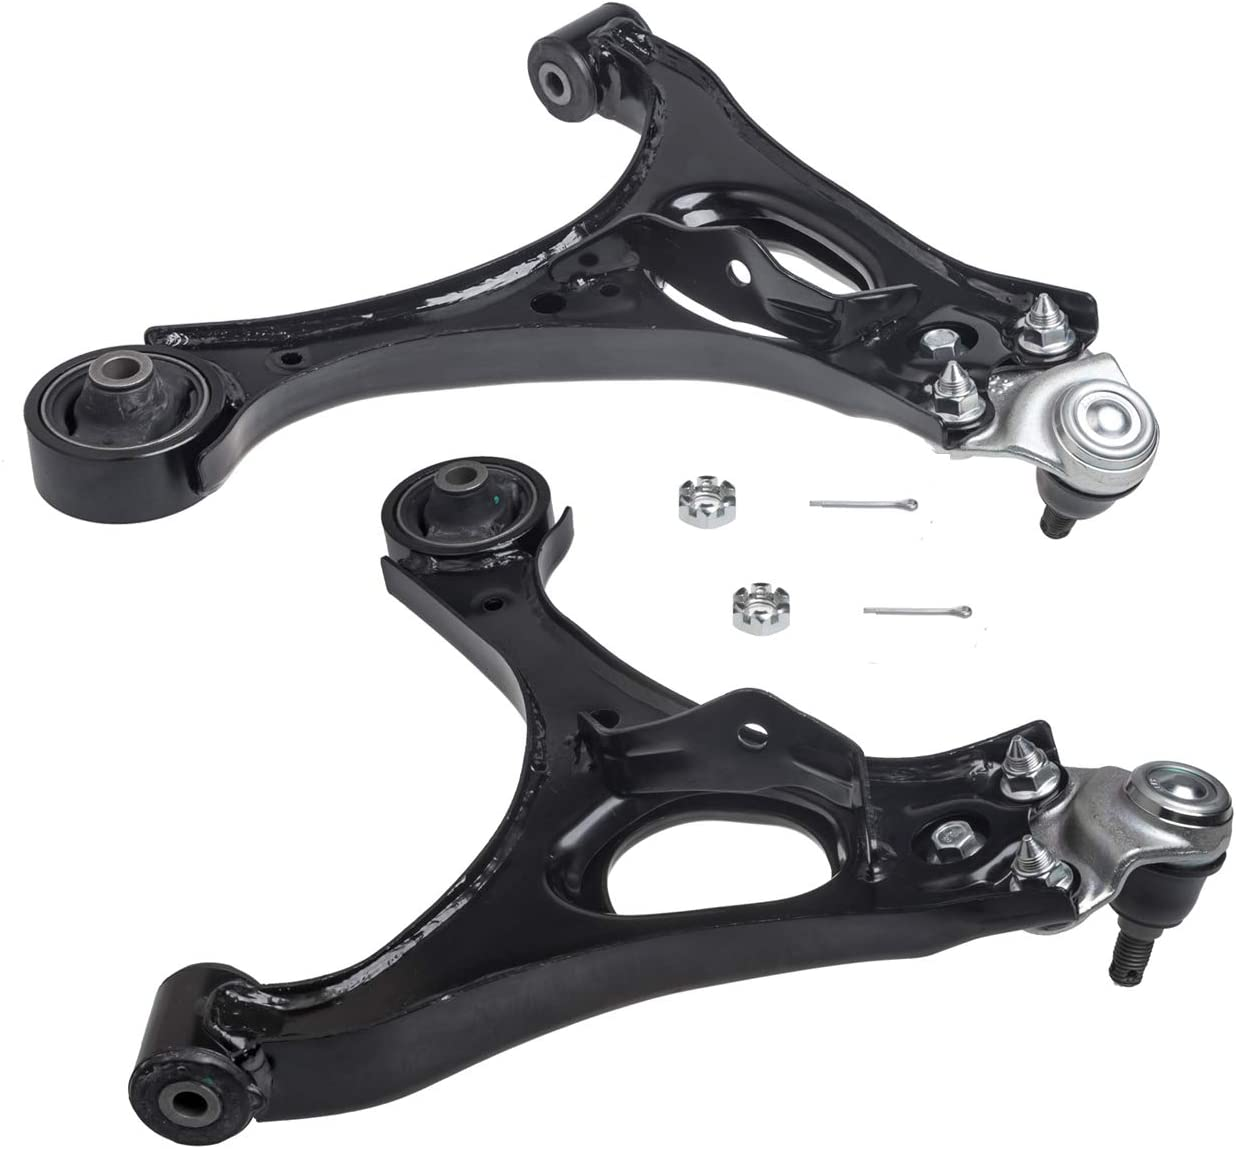 Fits 1.8L and 1.3L Acura CSX Driver Passenger Side Suspension TUCAREST 2Pcs K620382 K620383 Left Right Front Lower Control Arm and Ball Joint Assembly Compatible With 06 07 08 09 10 11 Honda Civic